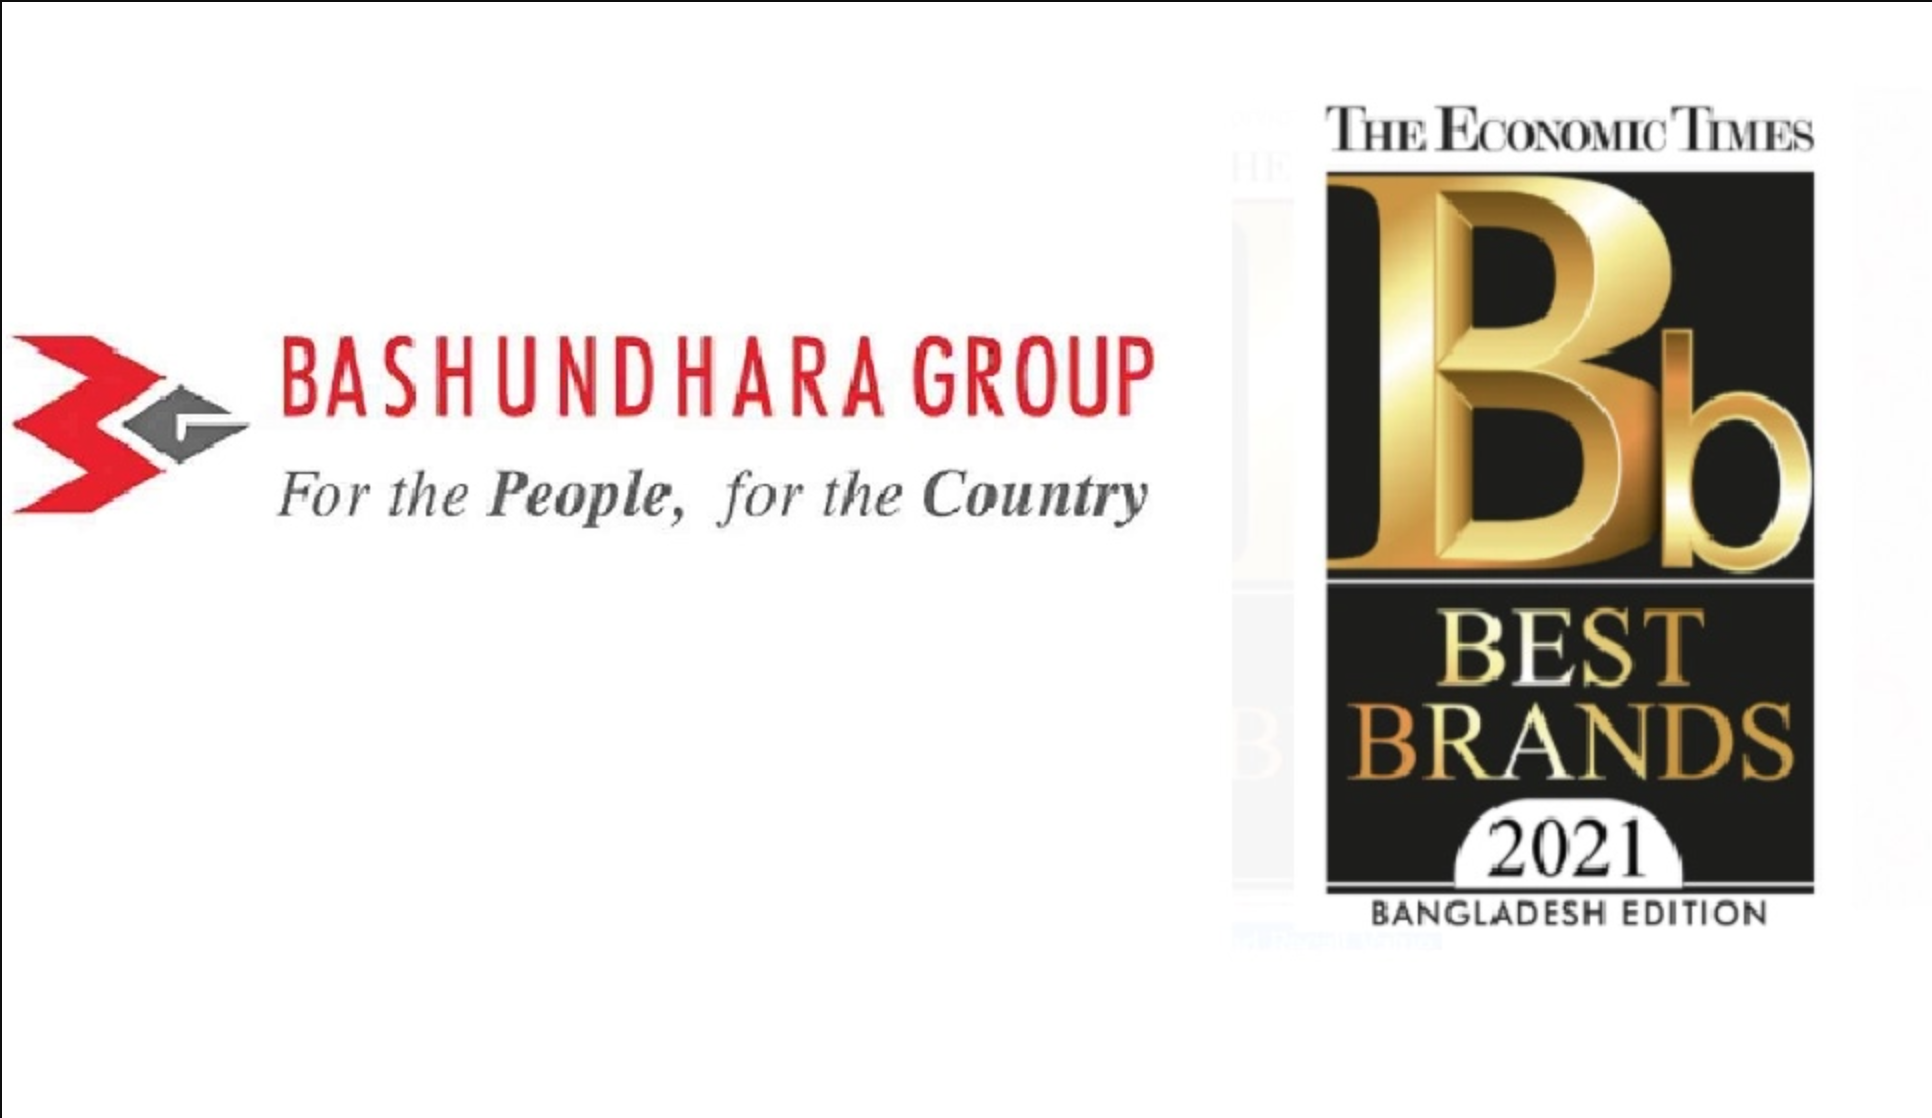 Bashundhara Group recognized with 'Best Brand 2021' status